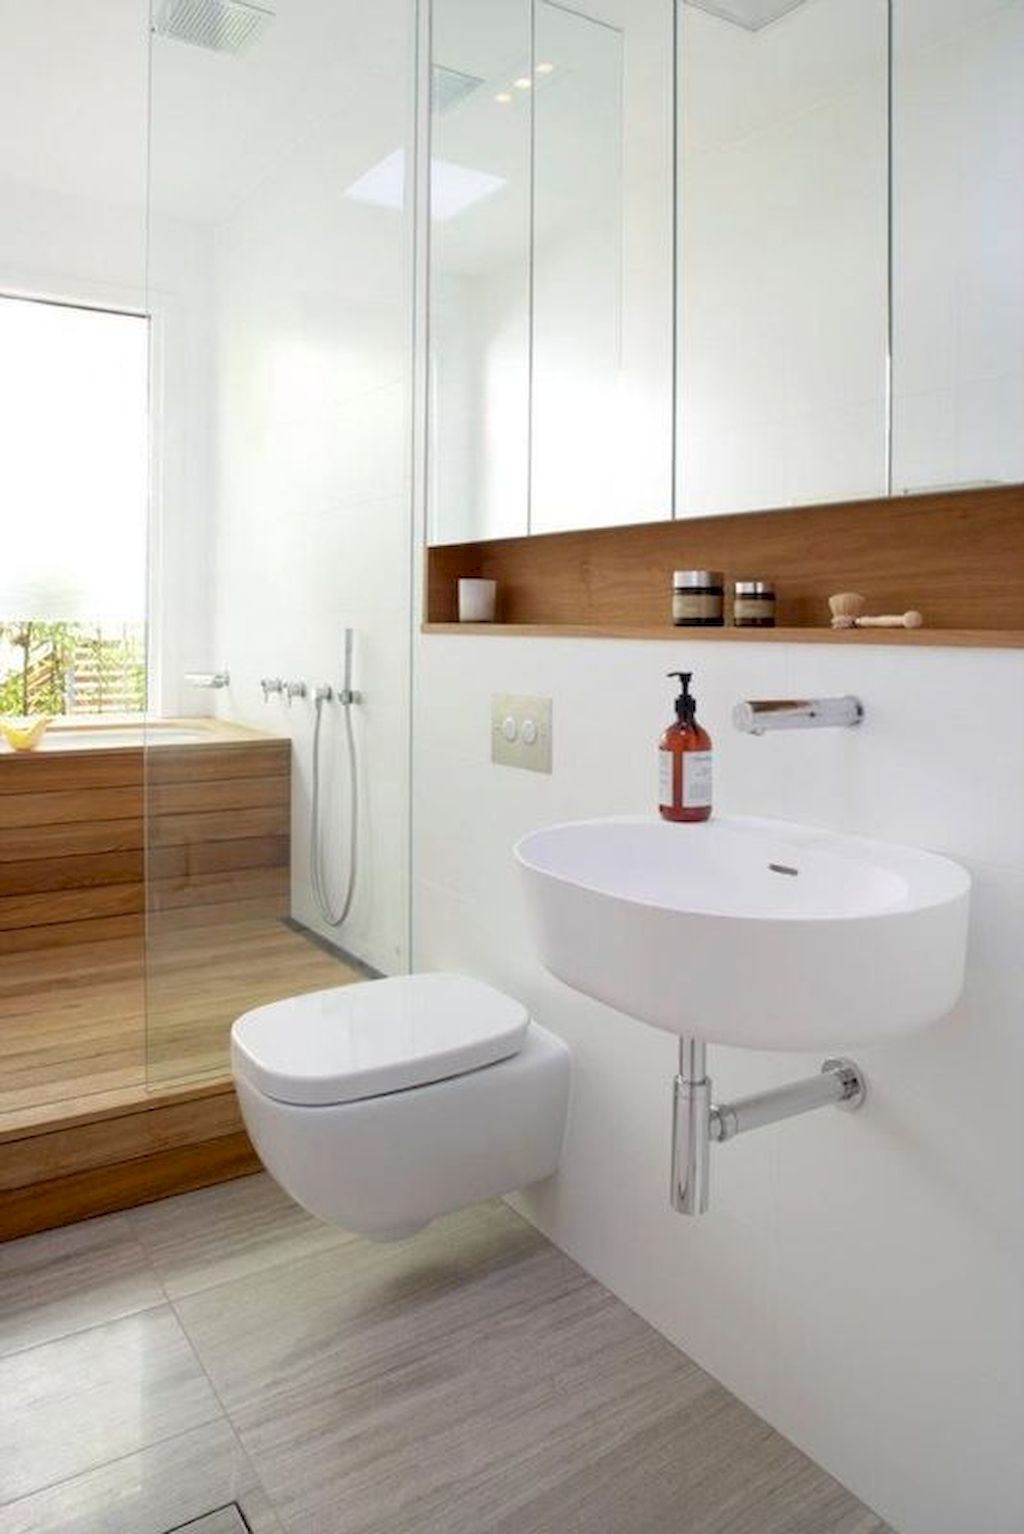 70+ Tiles Ideas for Small Bathroom - Get more Ideas in our gallery | #smallbathroom #bathroomdecoration #bathroomideas #bathroomtiles #bathroomdecor #homedecor (9)